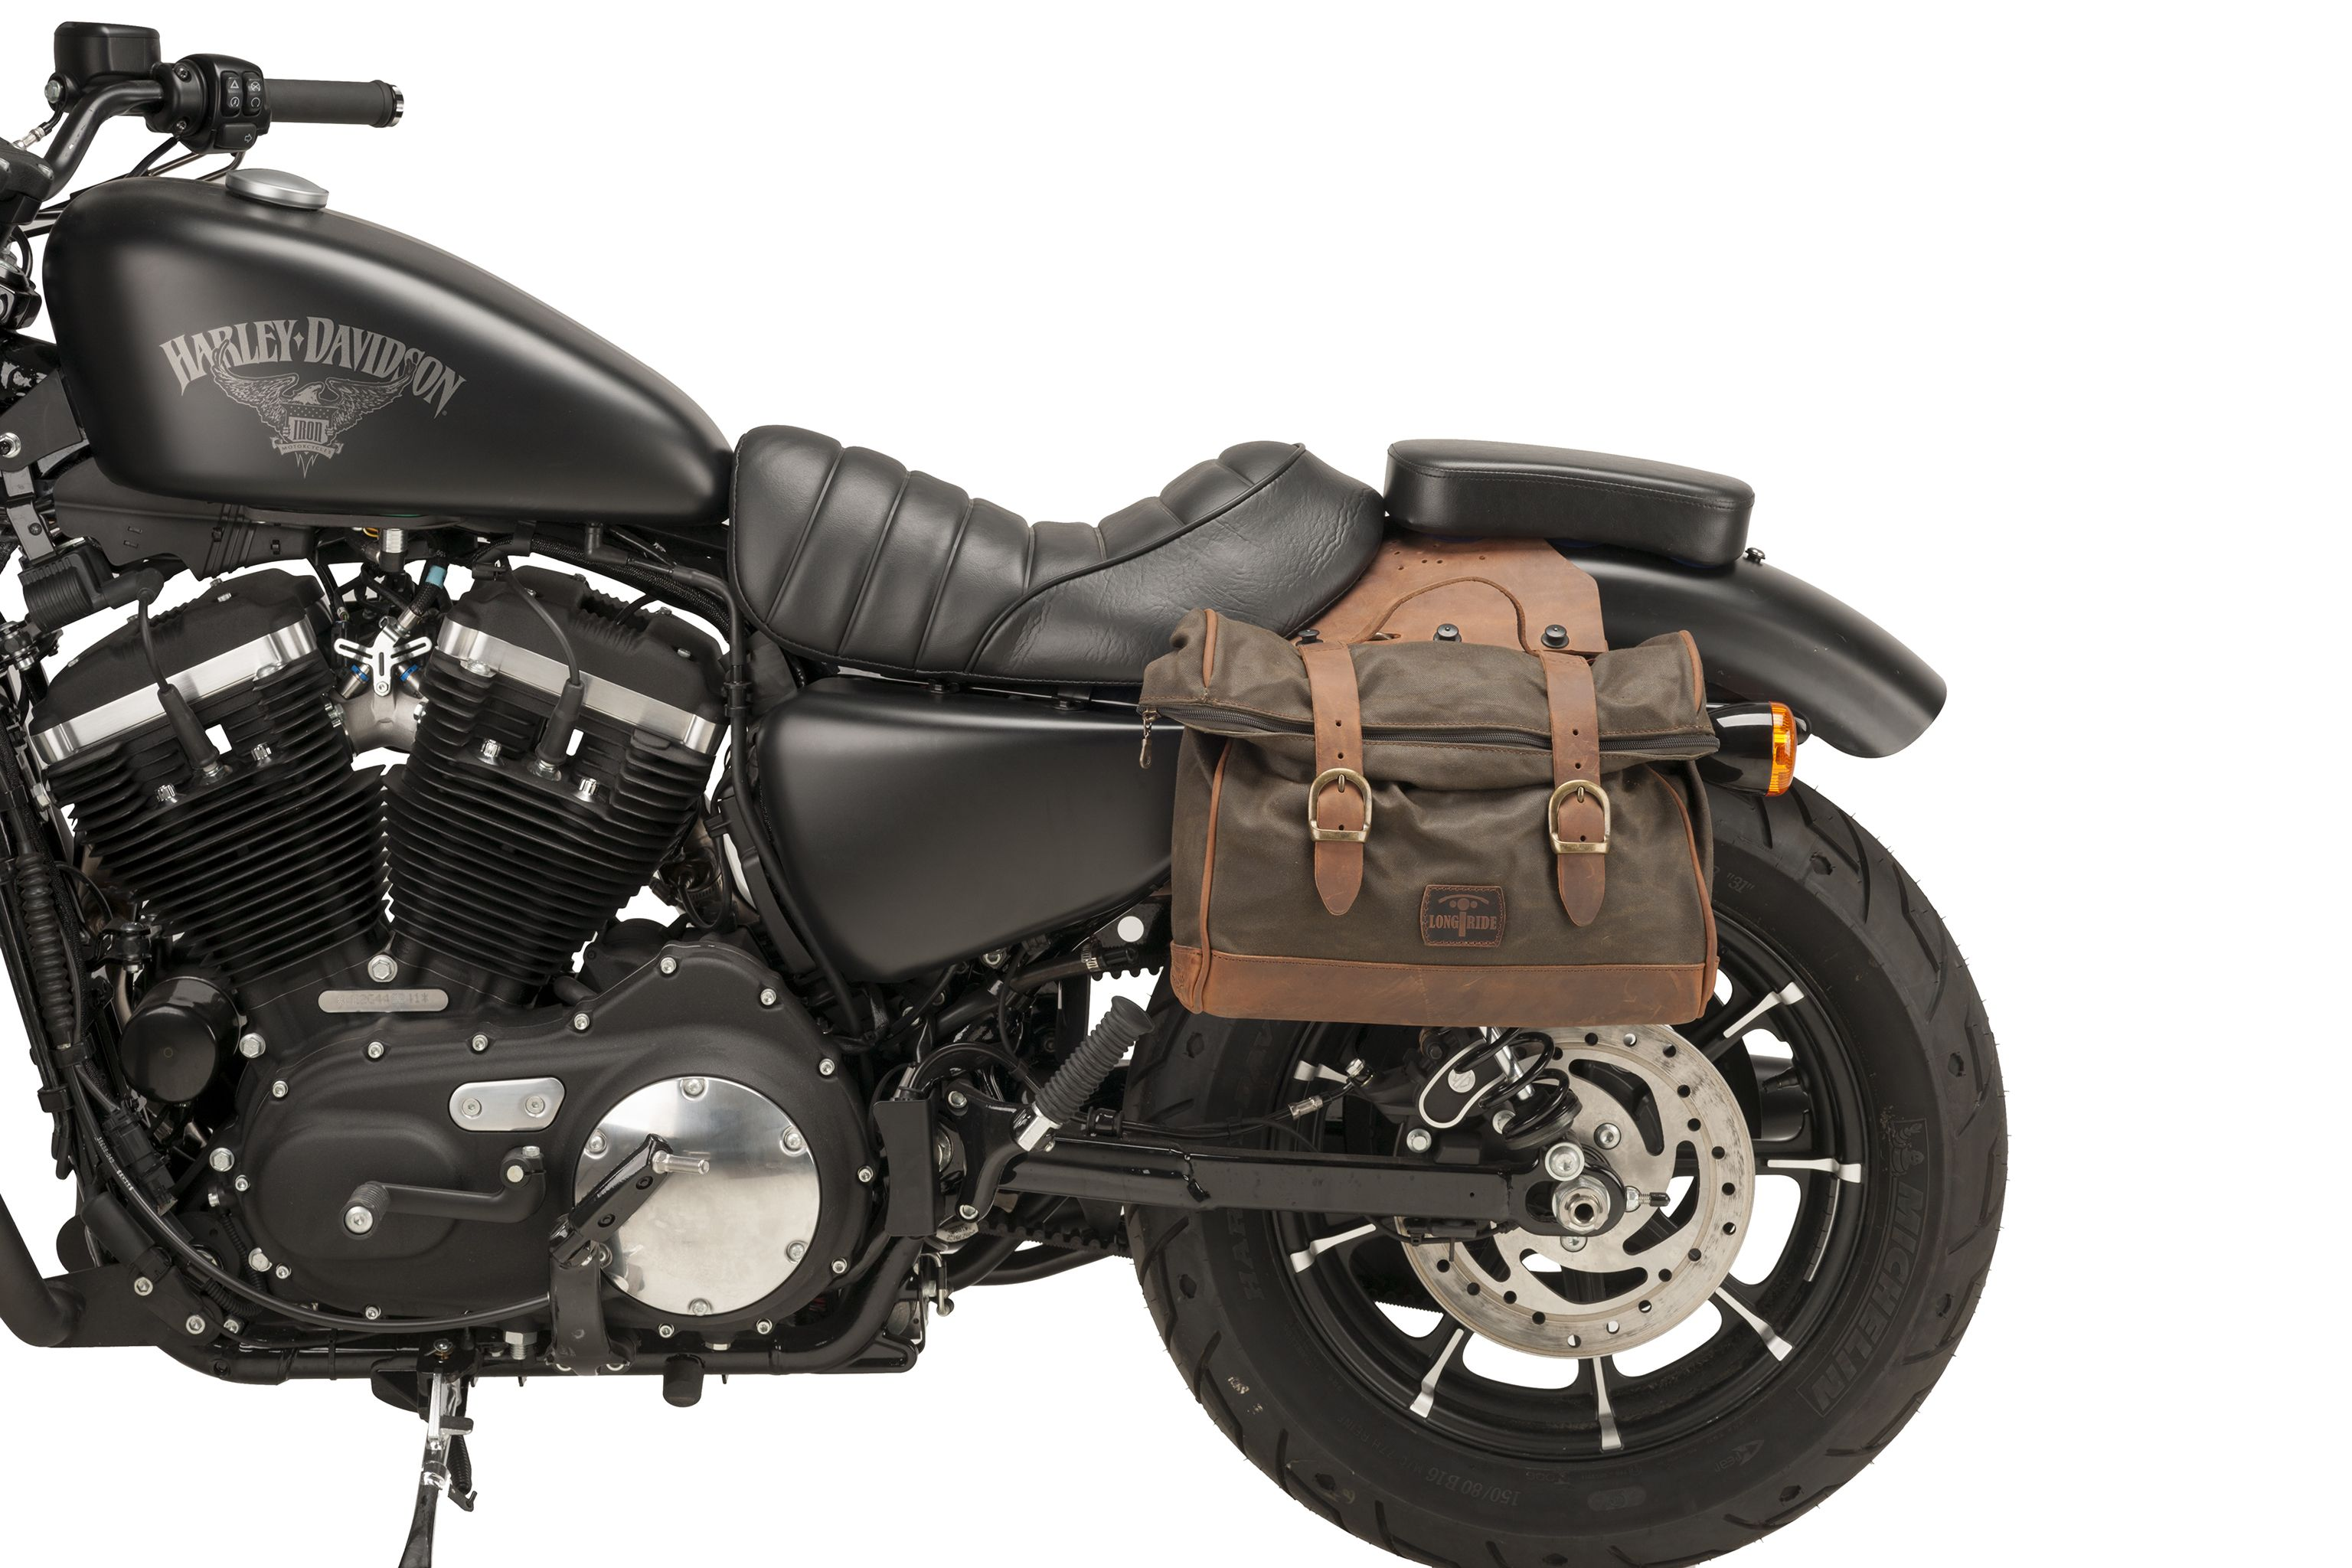 Soft Leather Bags For Harley Sportster By Customacces Harley Davidson Sportster 883 Sportster 883 Iron Harley Davidson Sportster